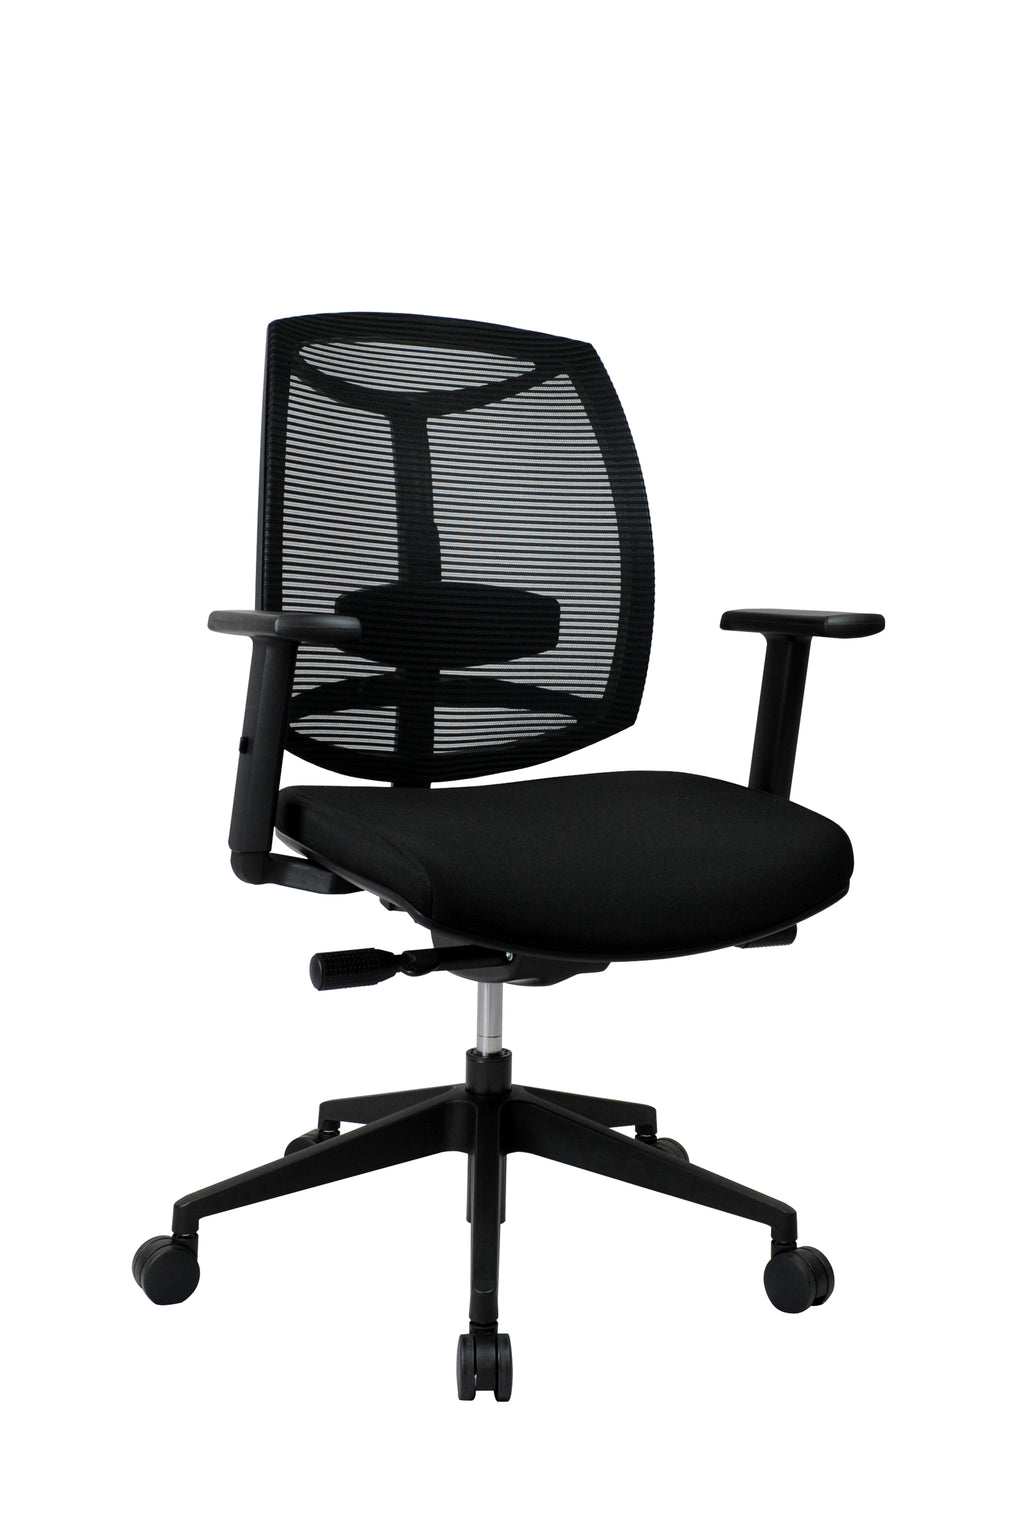 Hopa™ Mesh Chair - Medium Back Support - KiPP